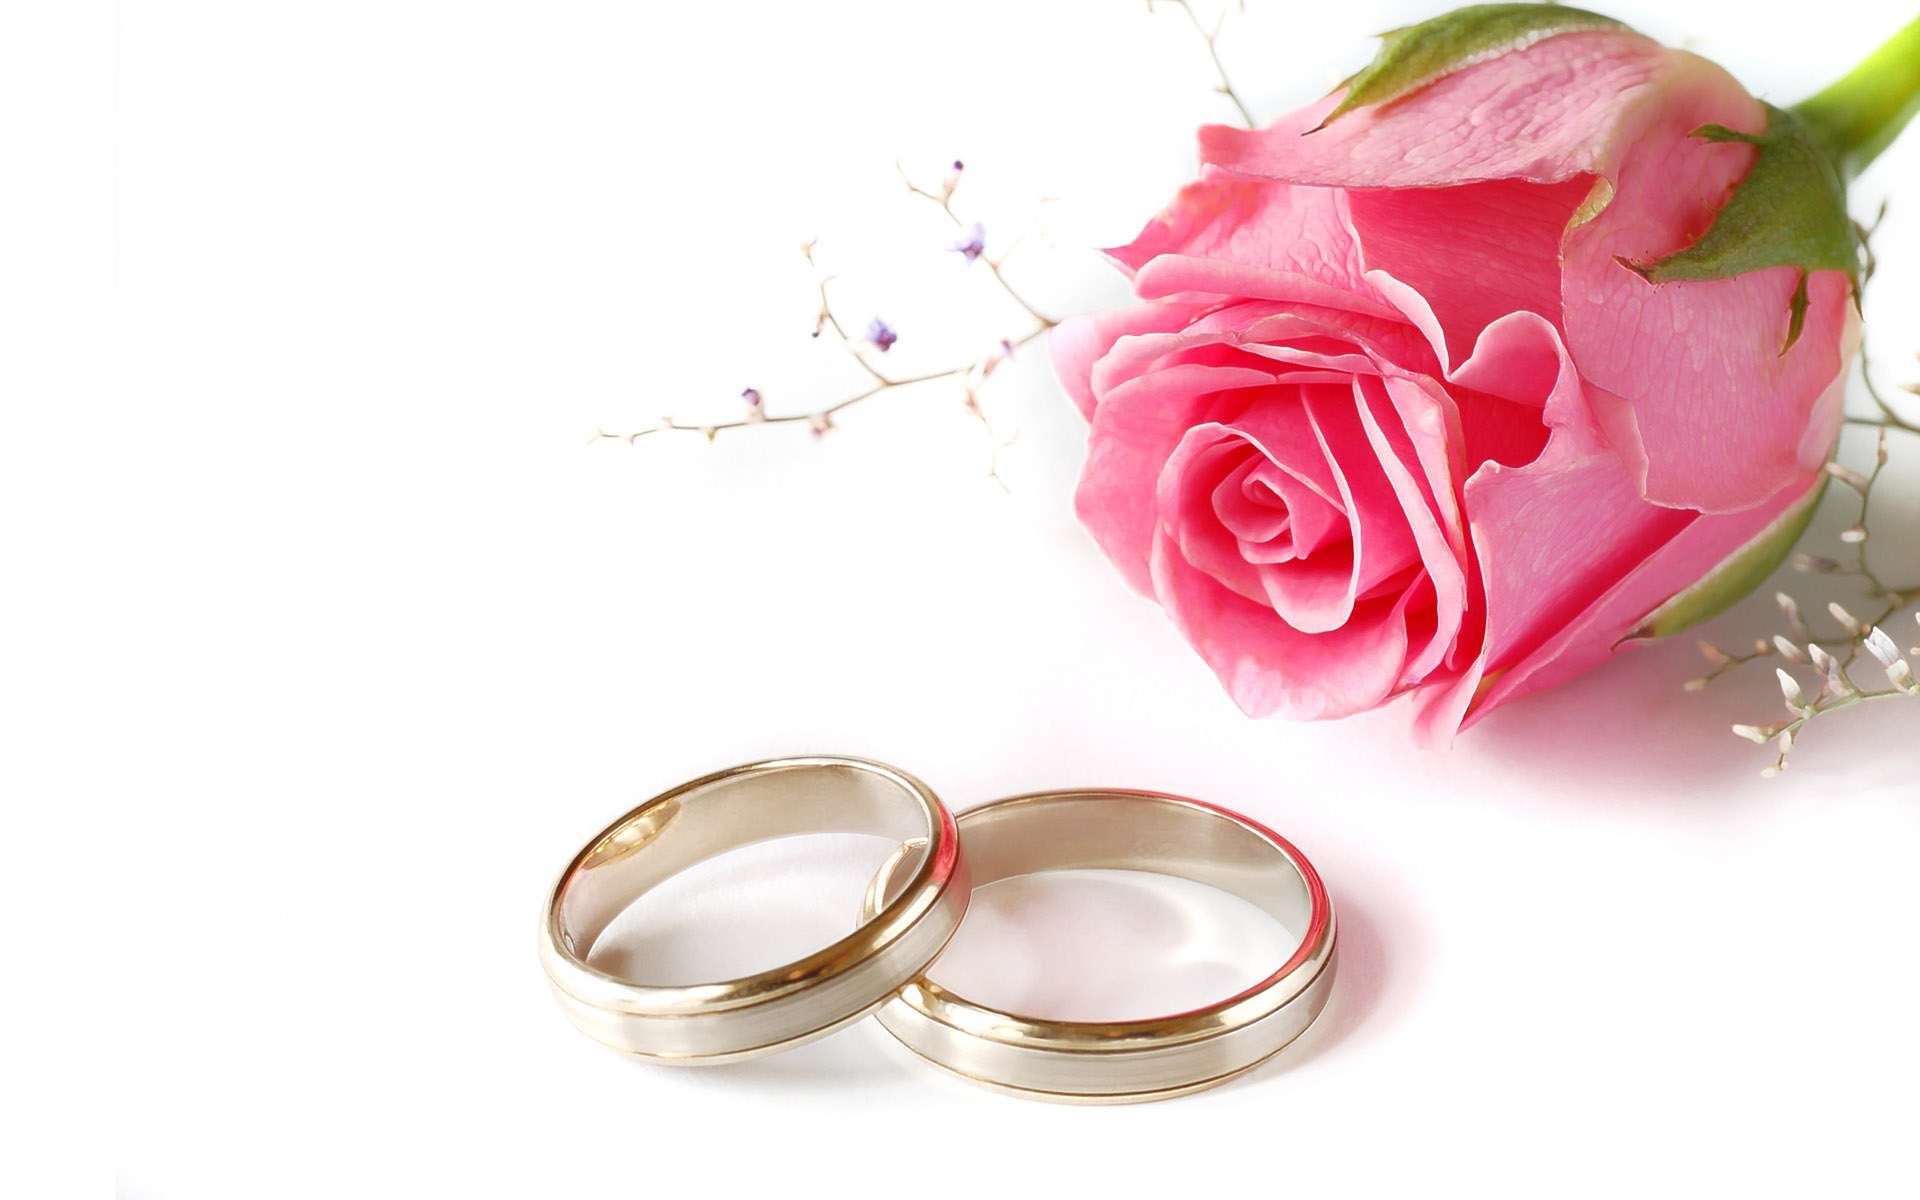 Love Wallpaper Ring : Wedding Backgrounds Wallpapers - Wallpaper cave